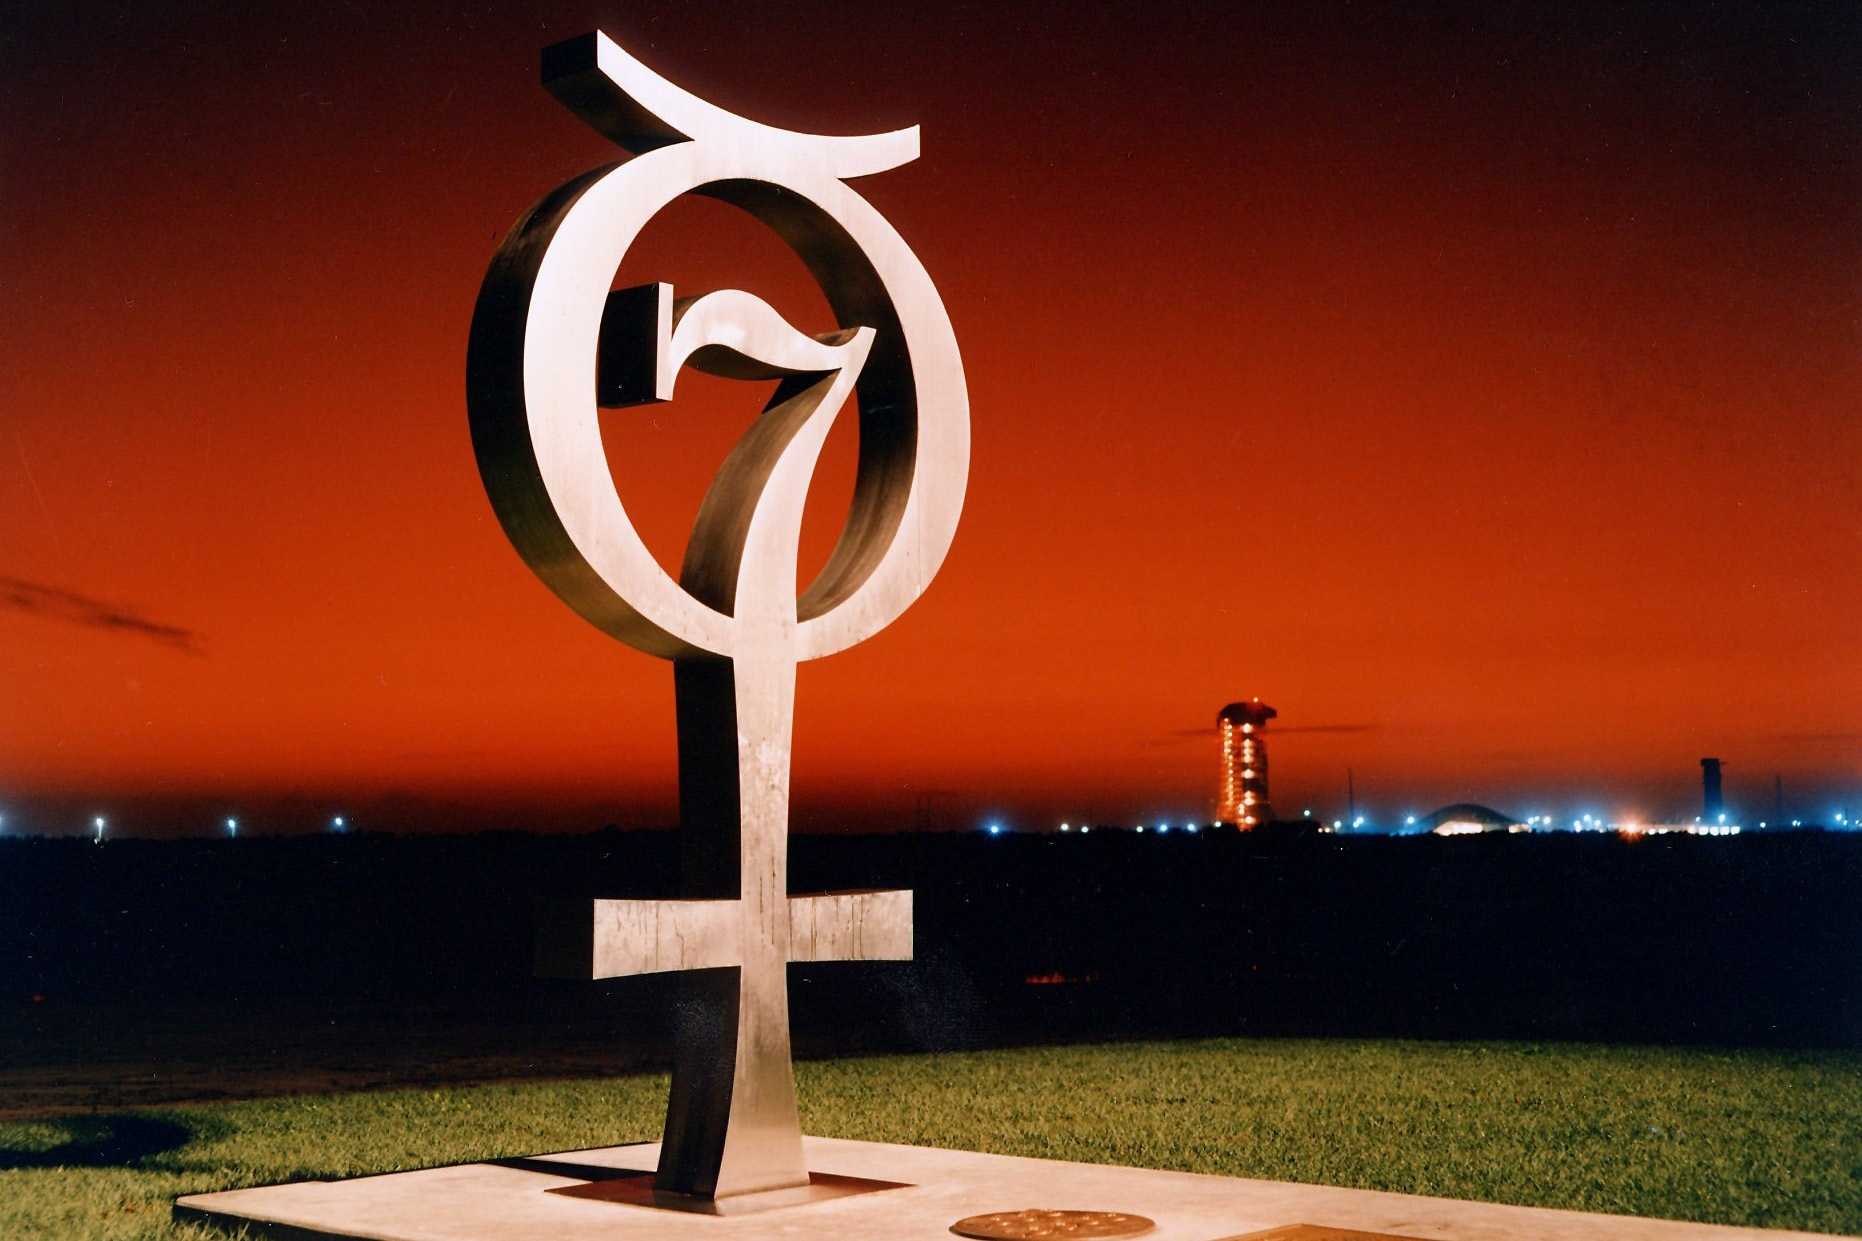 The Mercury Monument honoring the original seven astronauts is shown here at sunrise at Launch Complex 14. Photo taken on December 18, 1964.